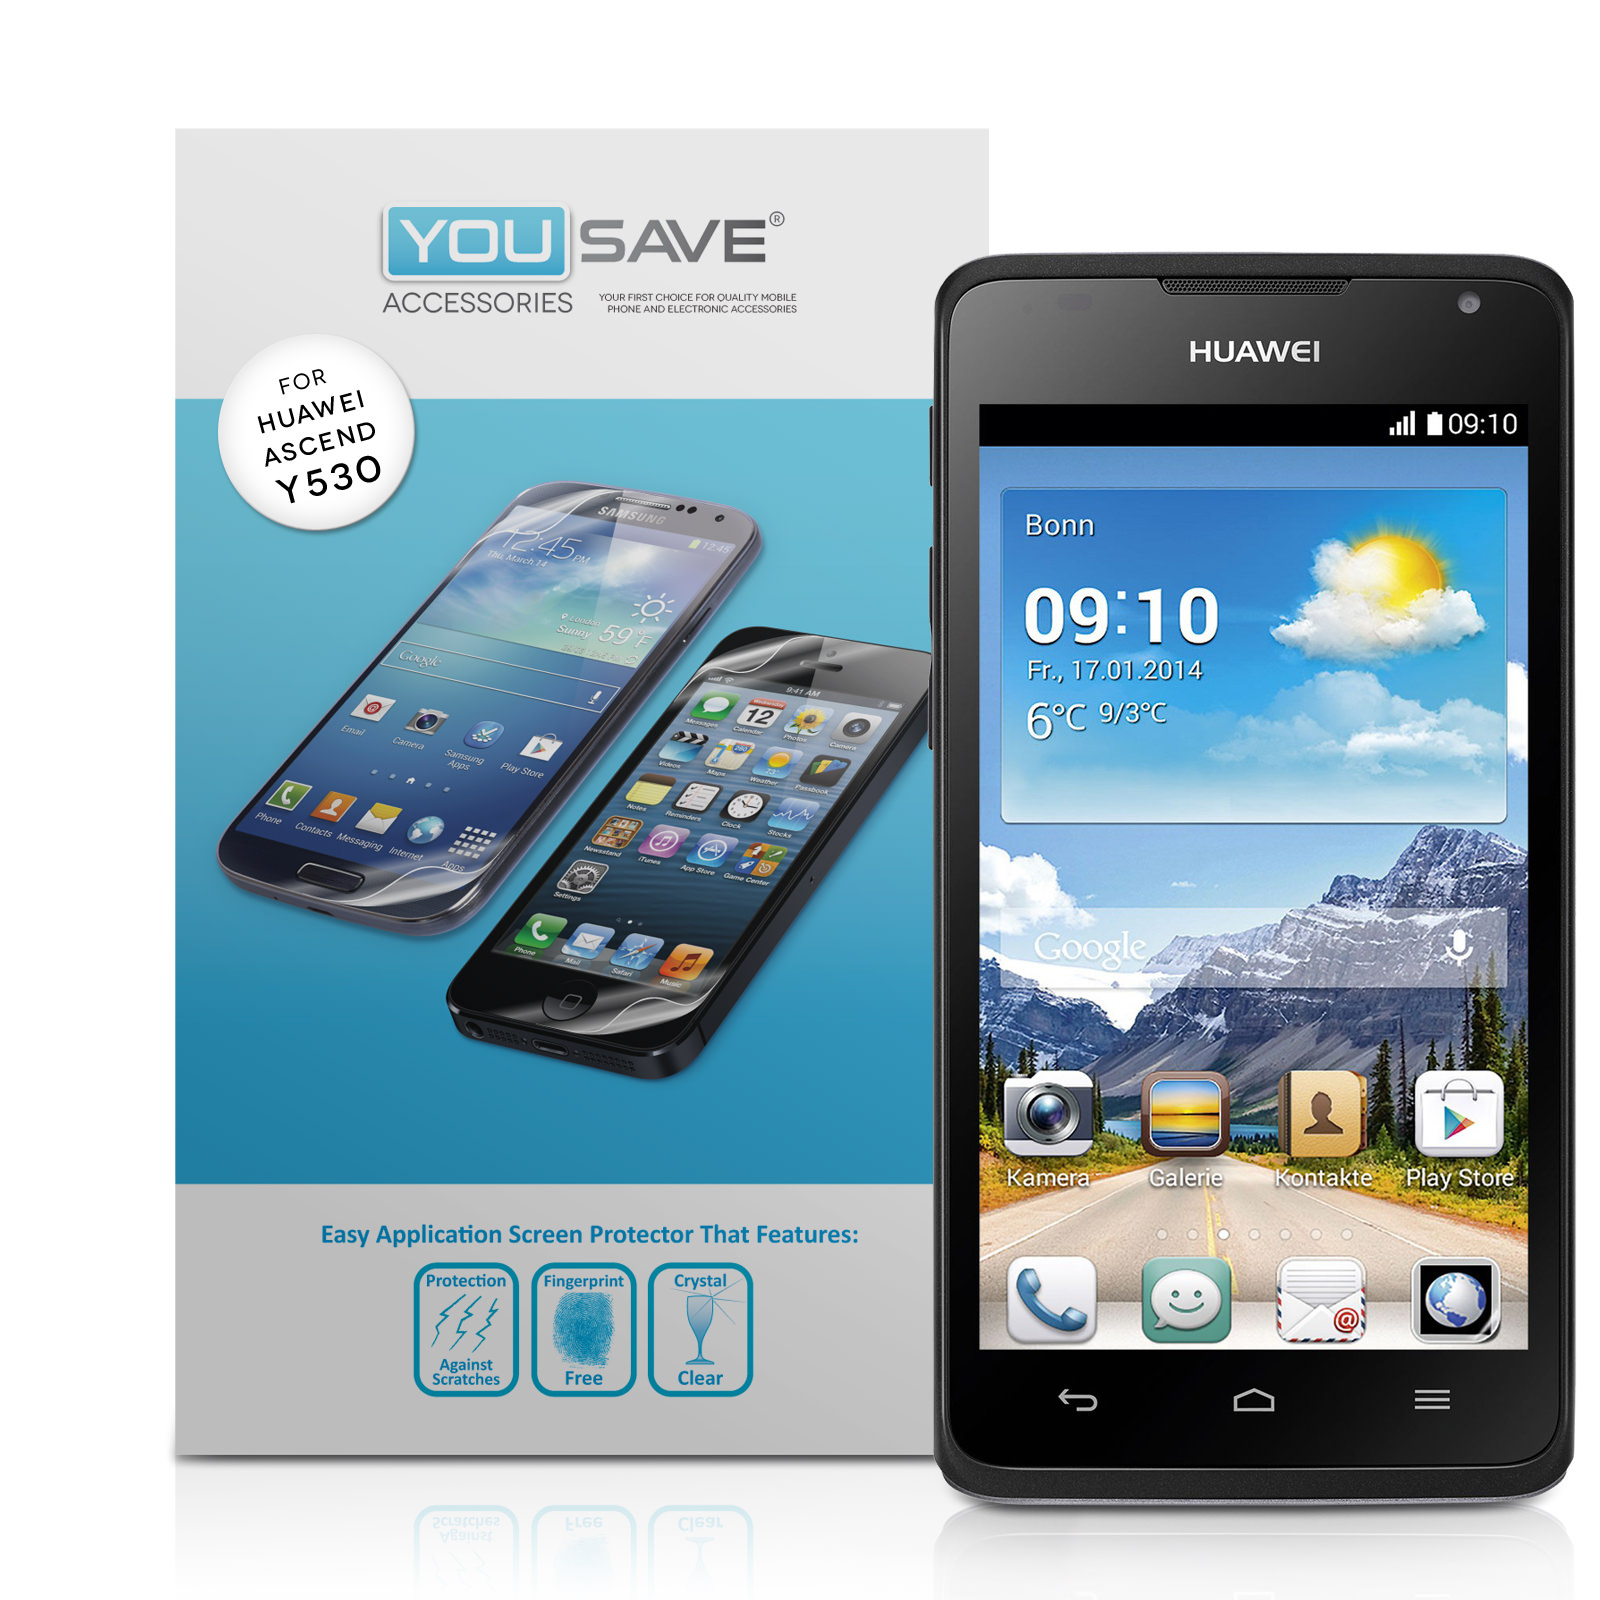 YouSave Accessories Huawei Ascend Y530 Screen Protectors x3